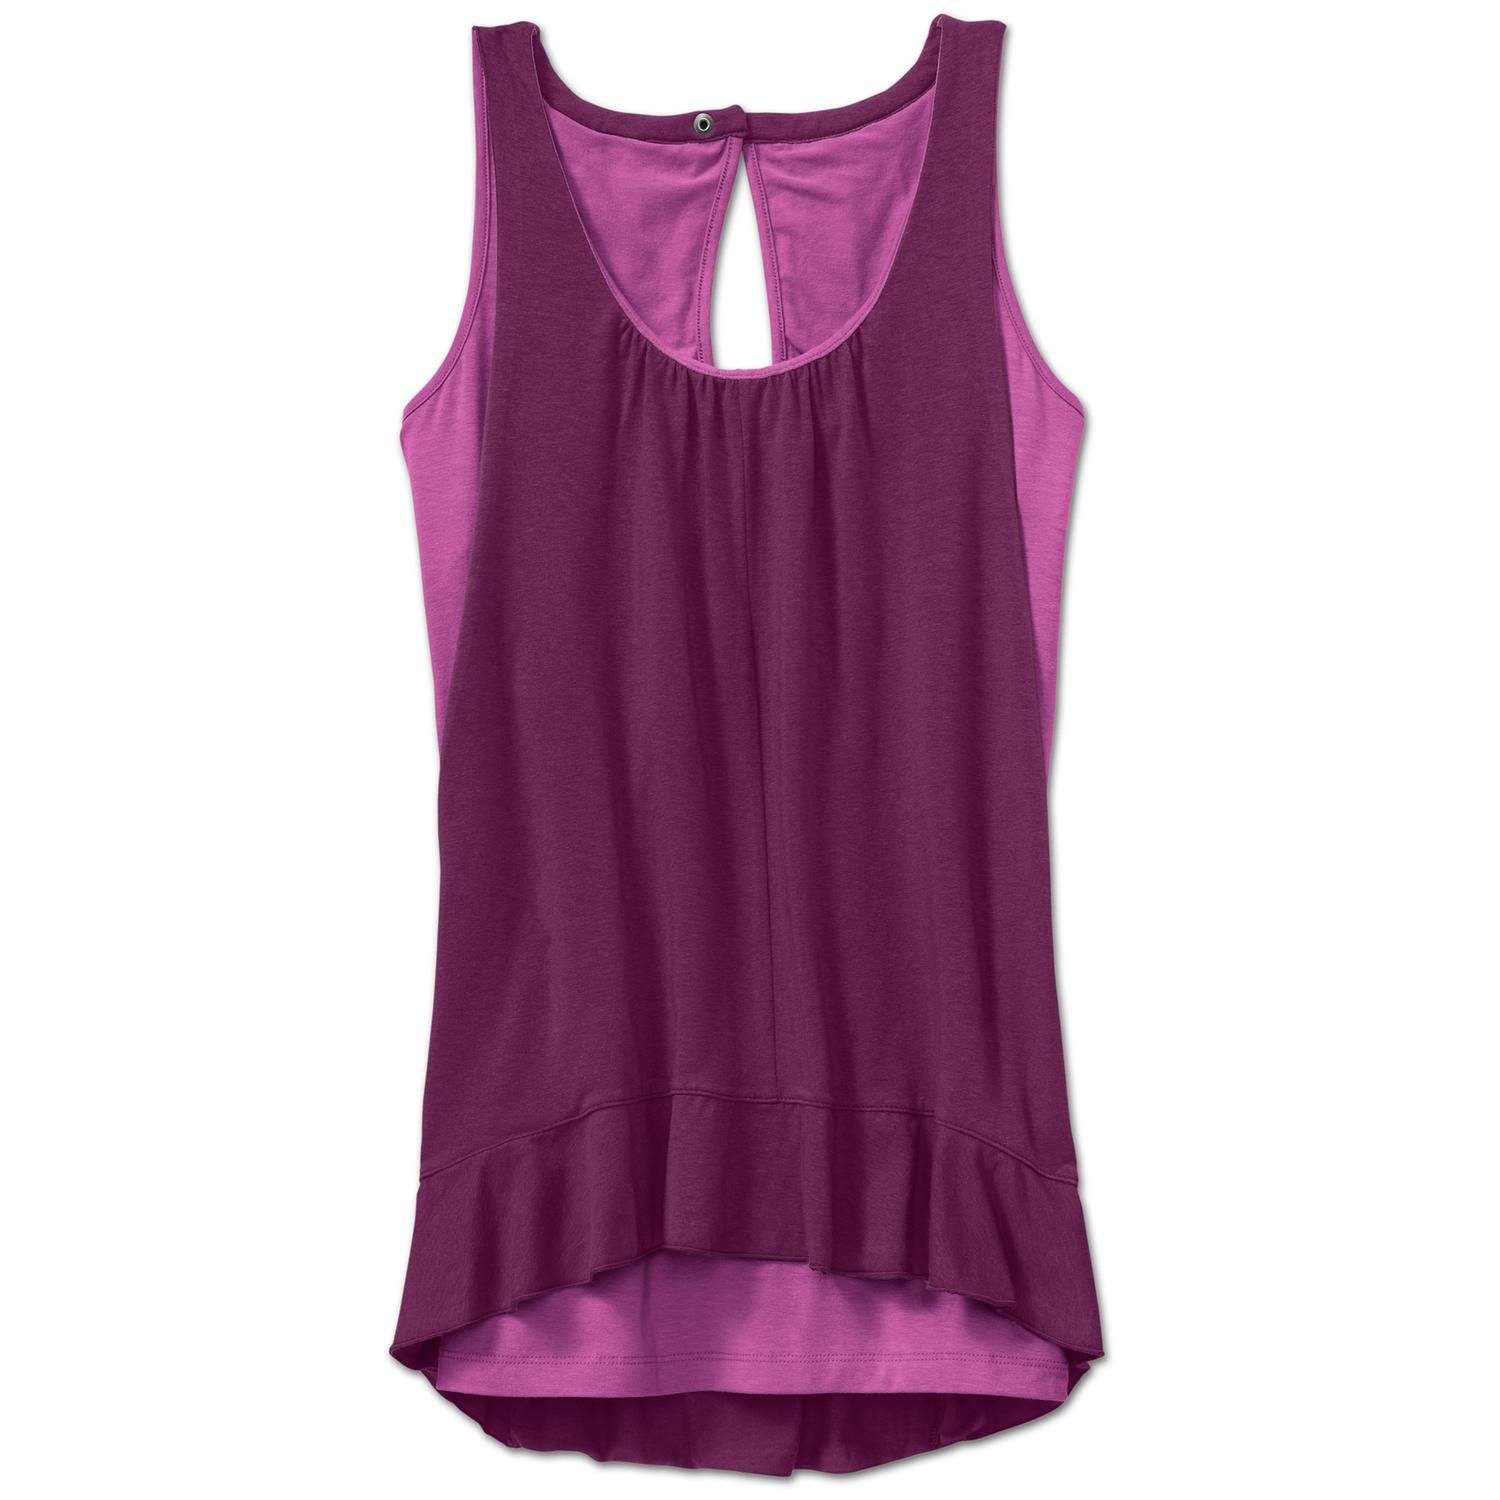 Yoga top... cute style